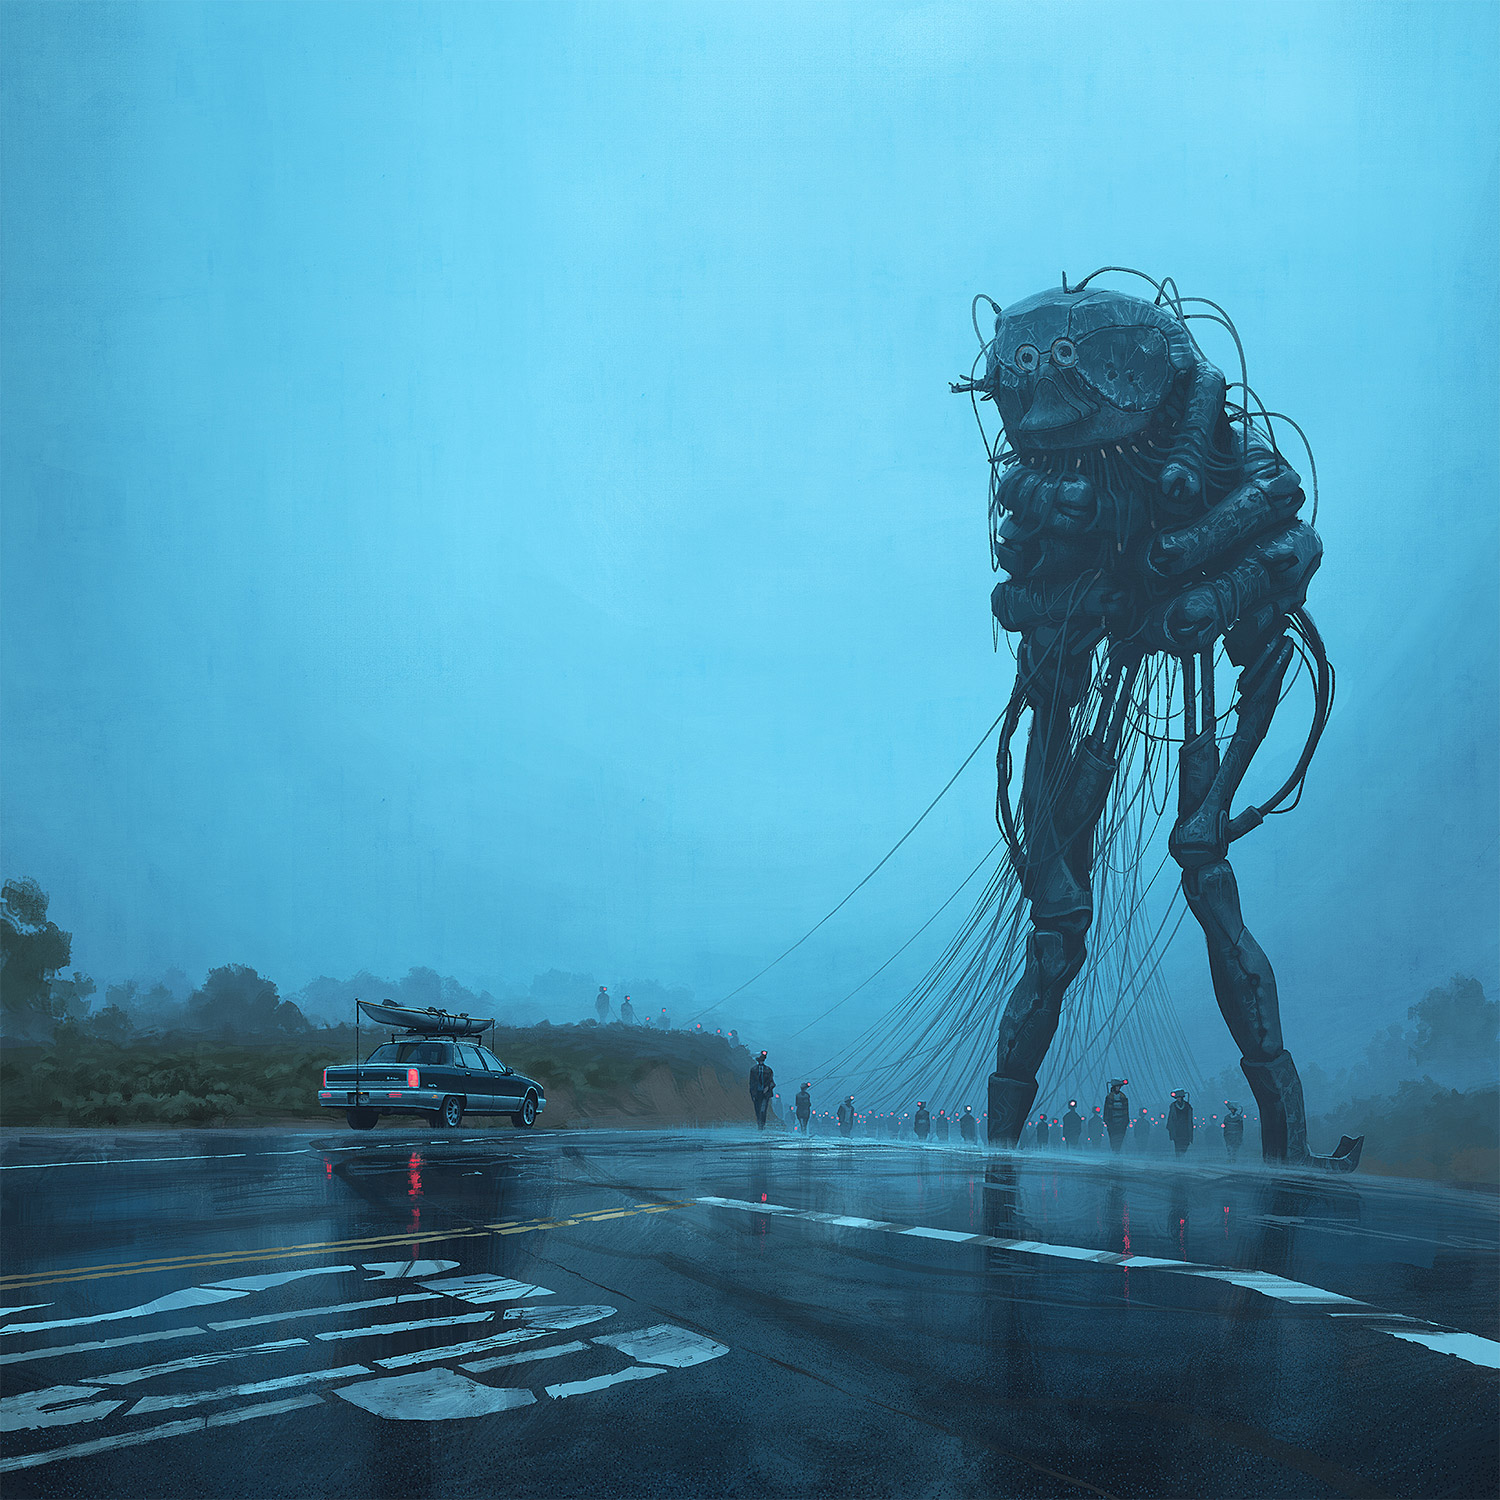 Simon Stalenhag - tall menacing mech robot